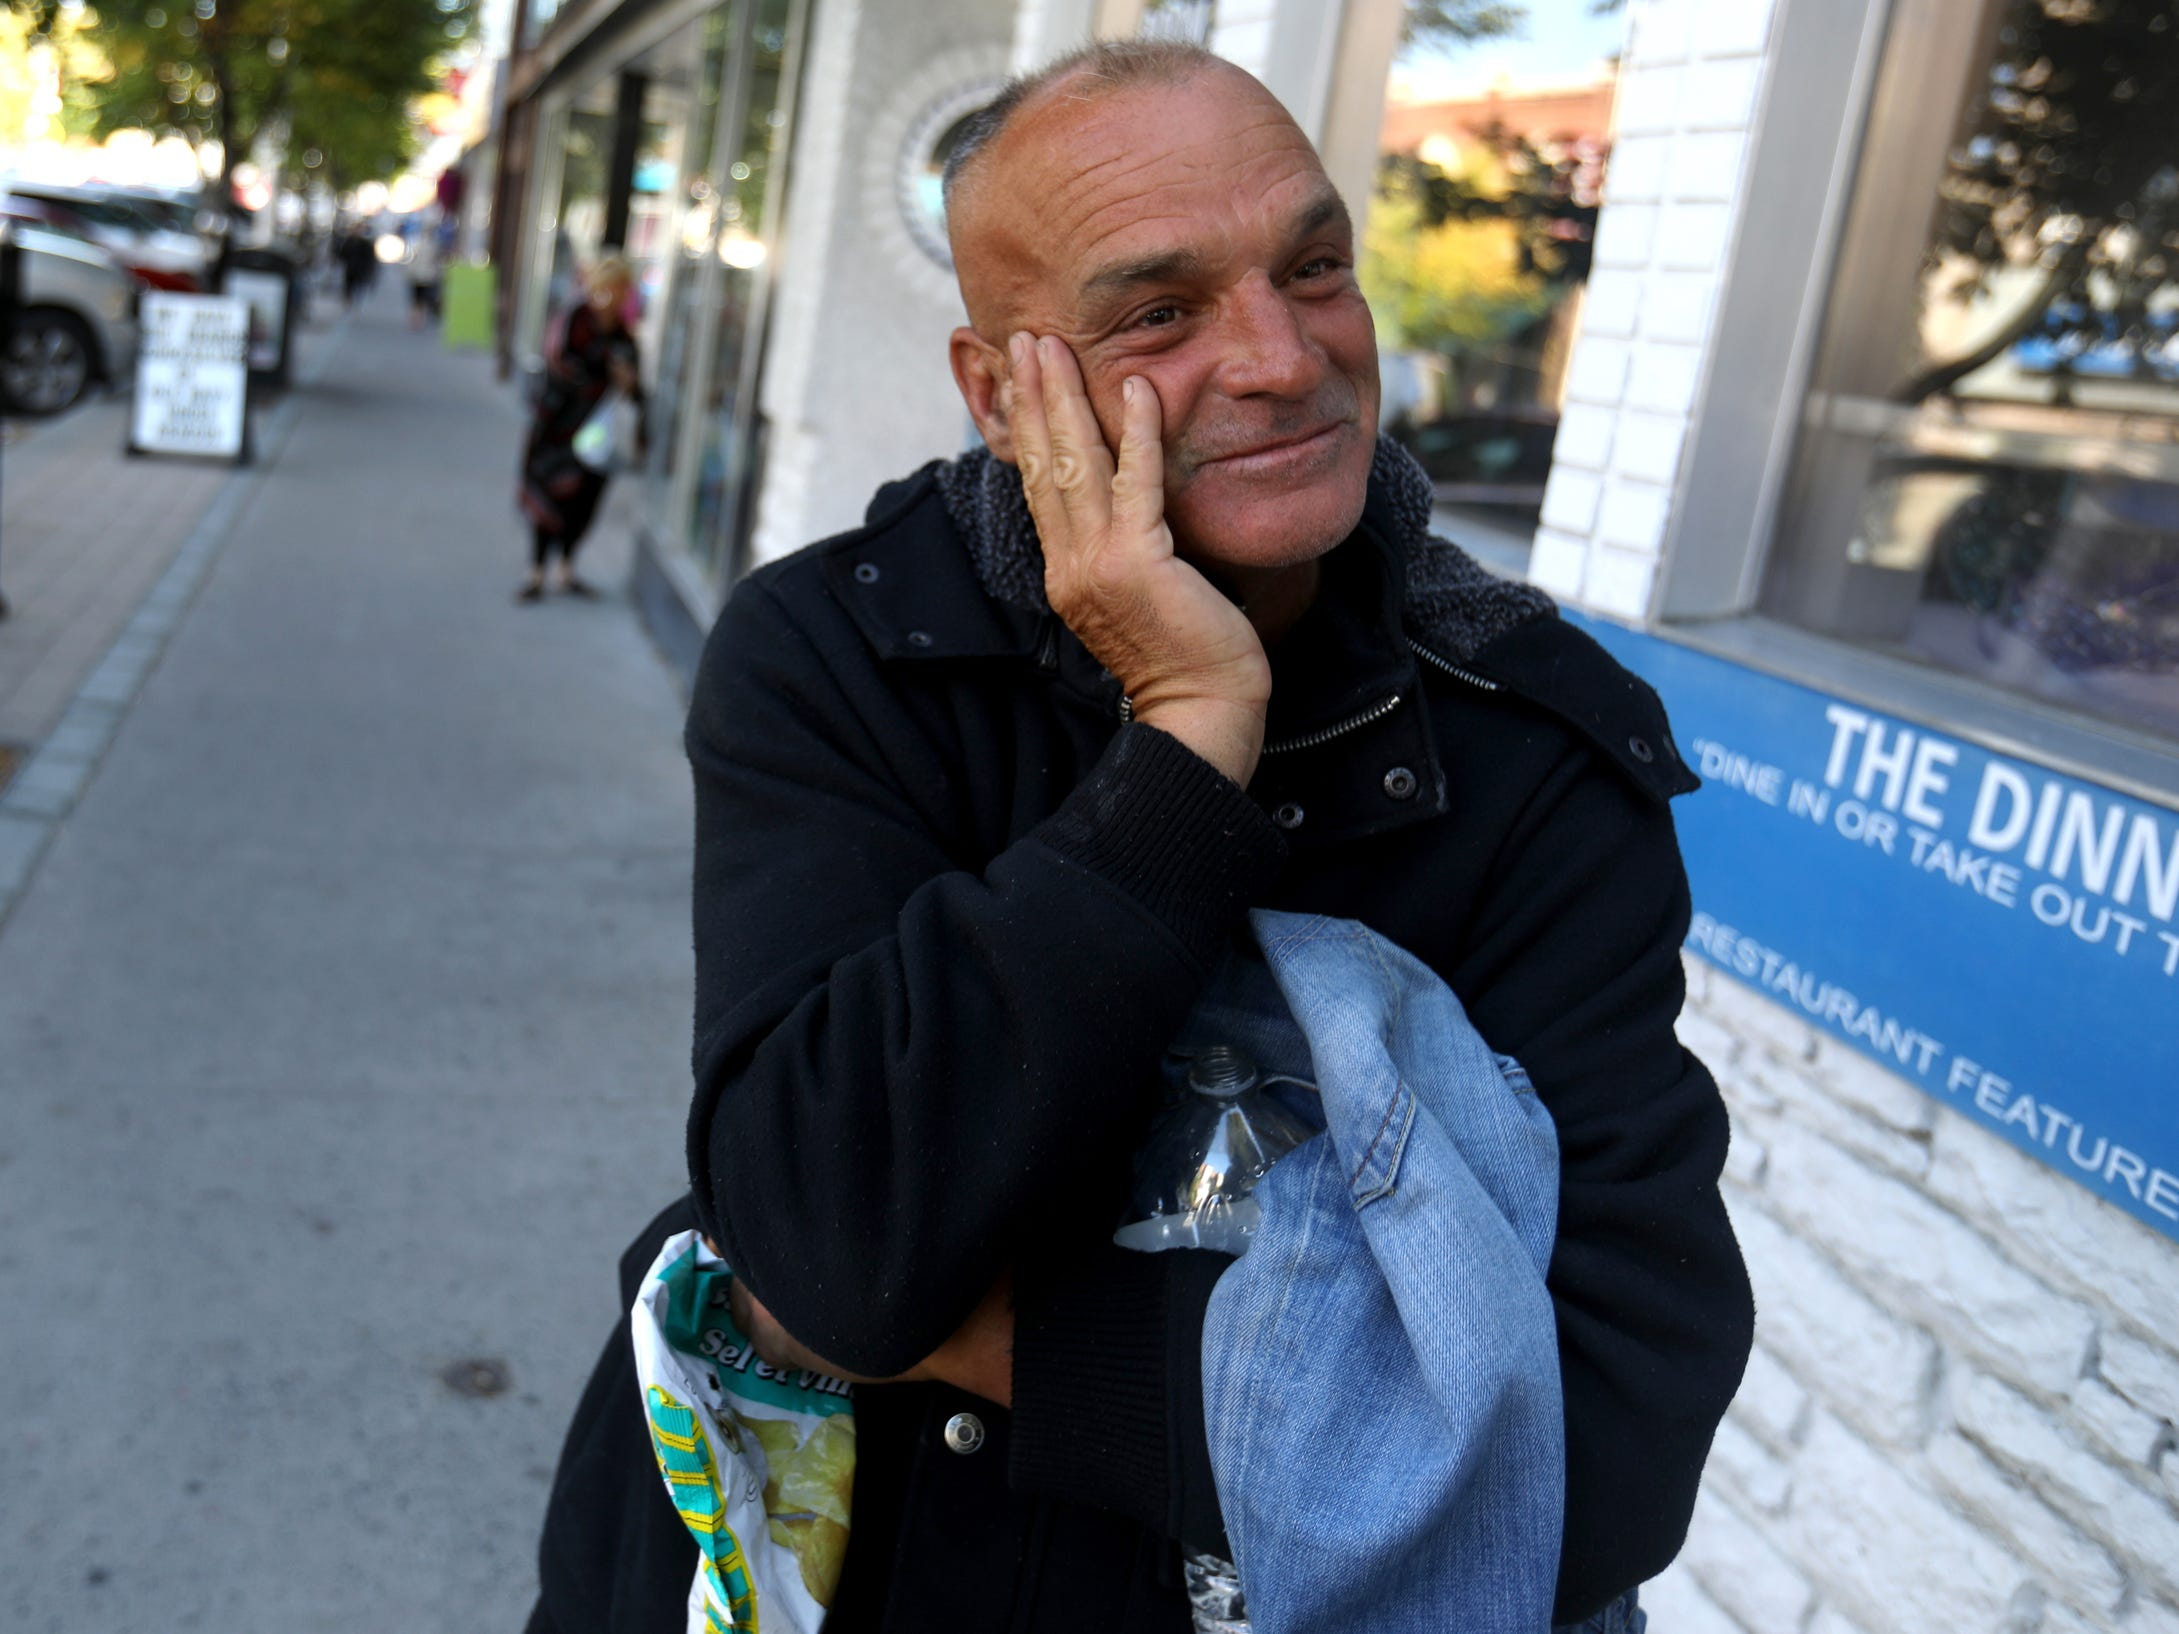 Joe Murphy smiles while looking down the sidewalk in downtown Kenora, Ontario, Canada on Wednesday, September 4, 2018.